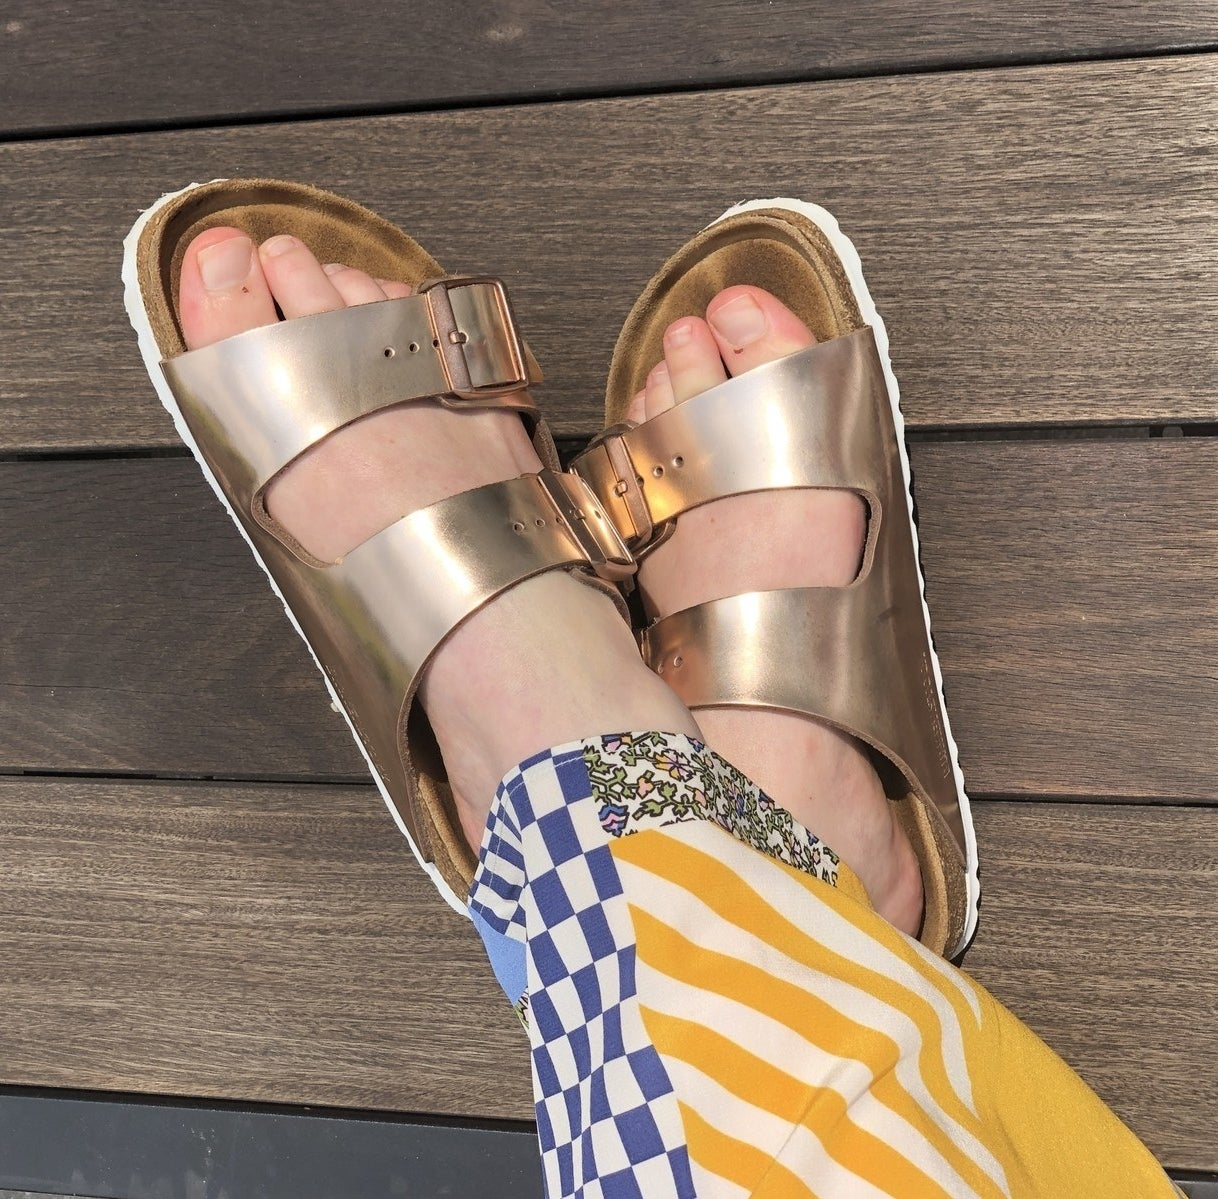 Natalie's feet with two-strap flat sandal with a big shiny buckle on each strap, in shiny copper